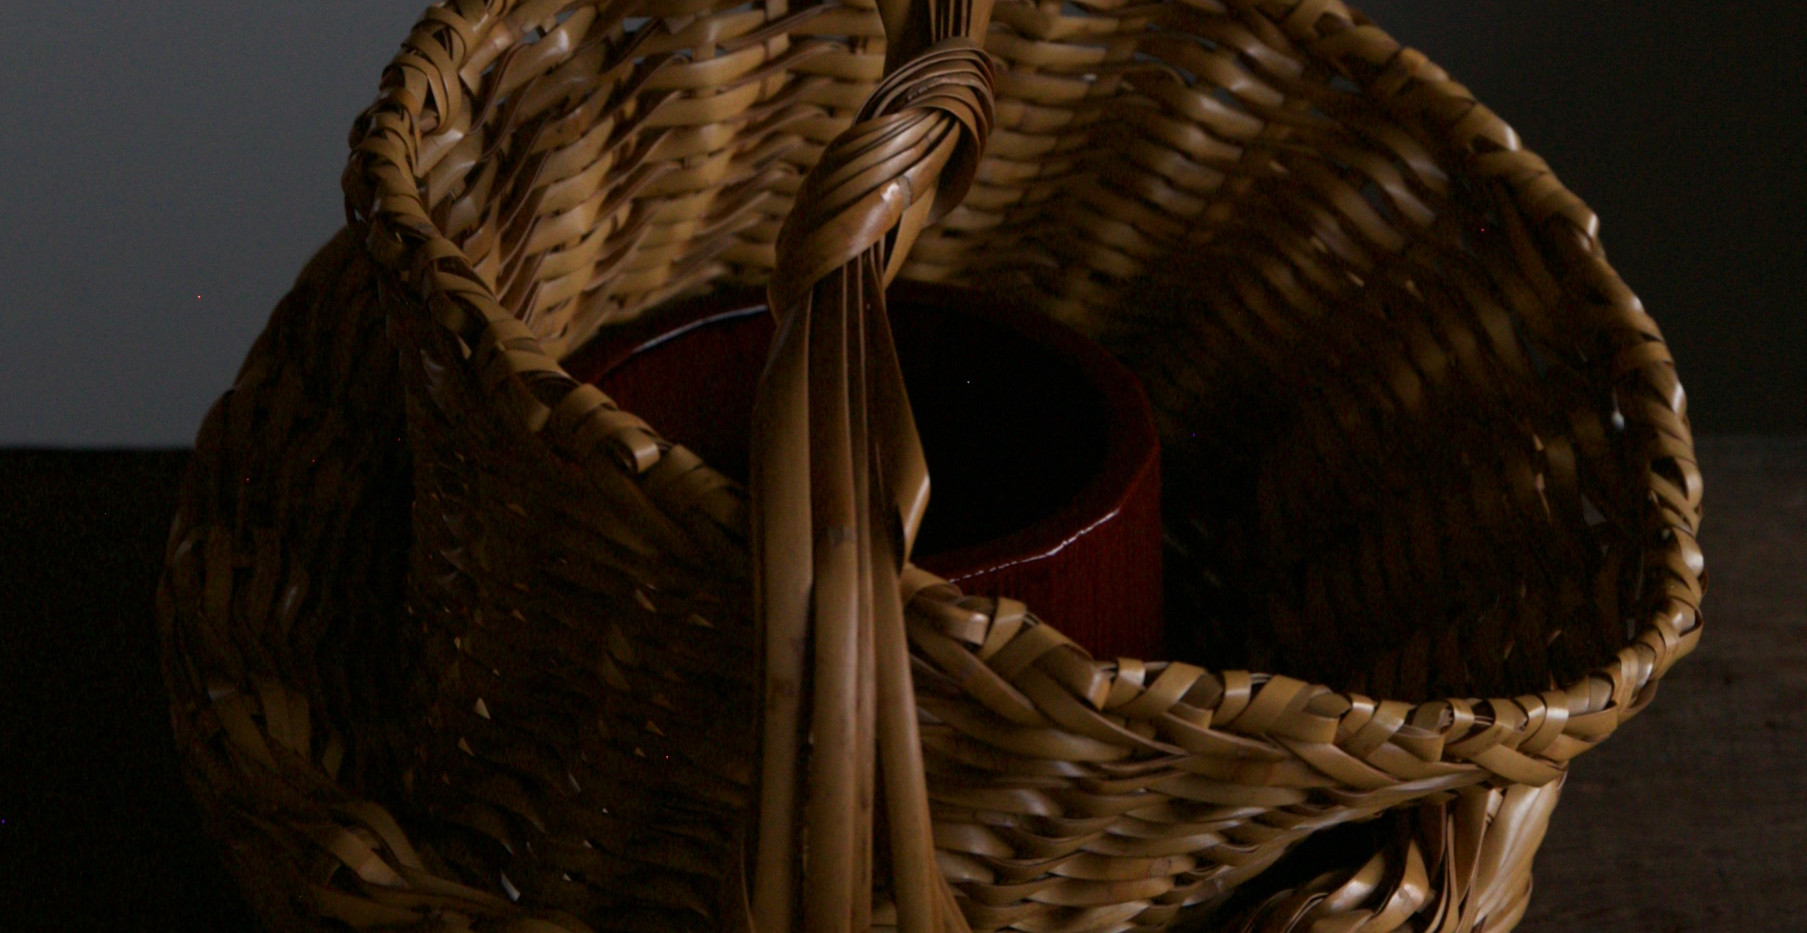 Folded basket by Iizuka Shokansai 02.jpg